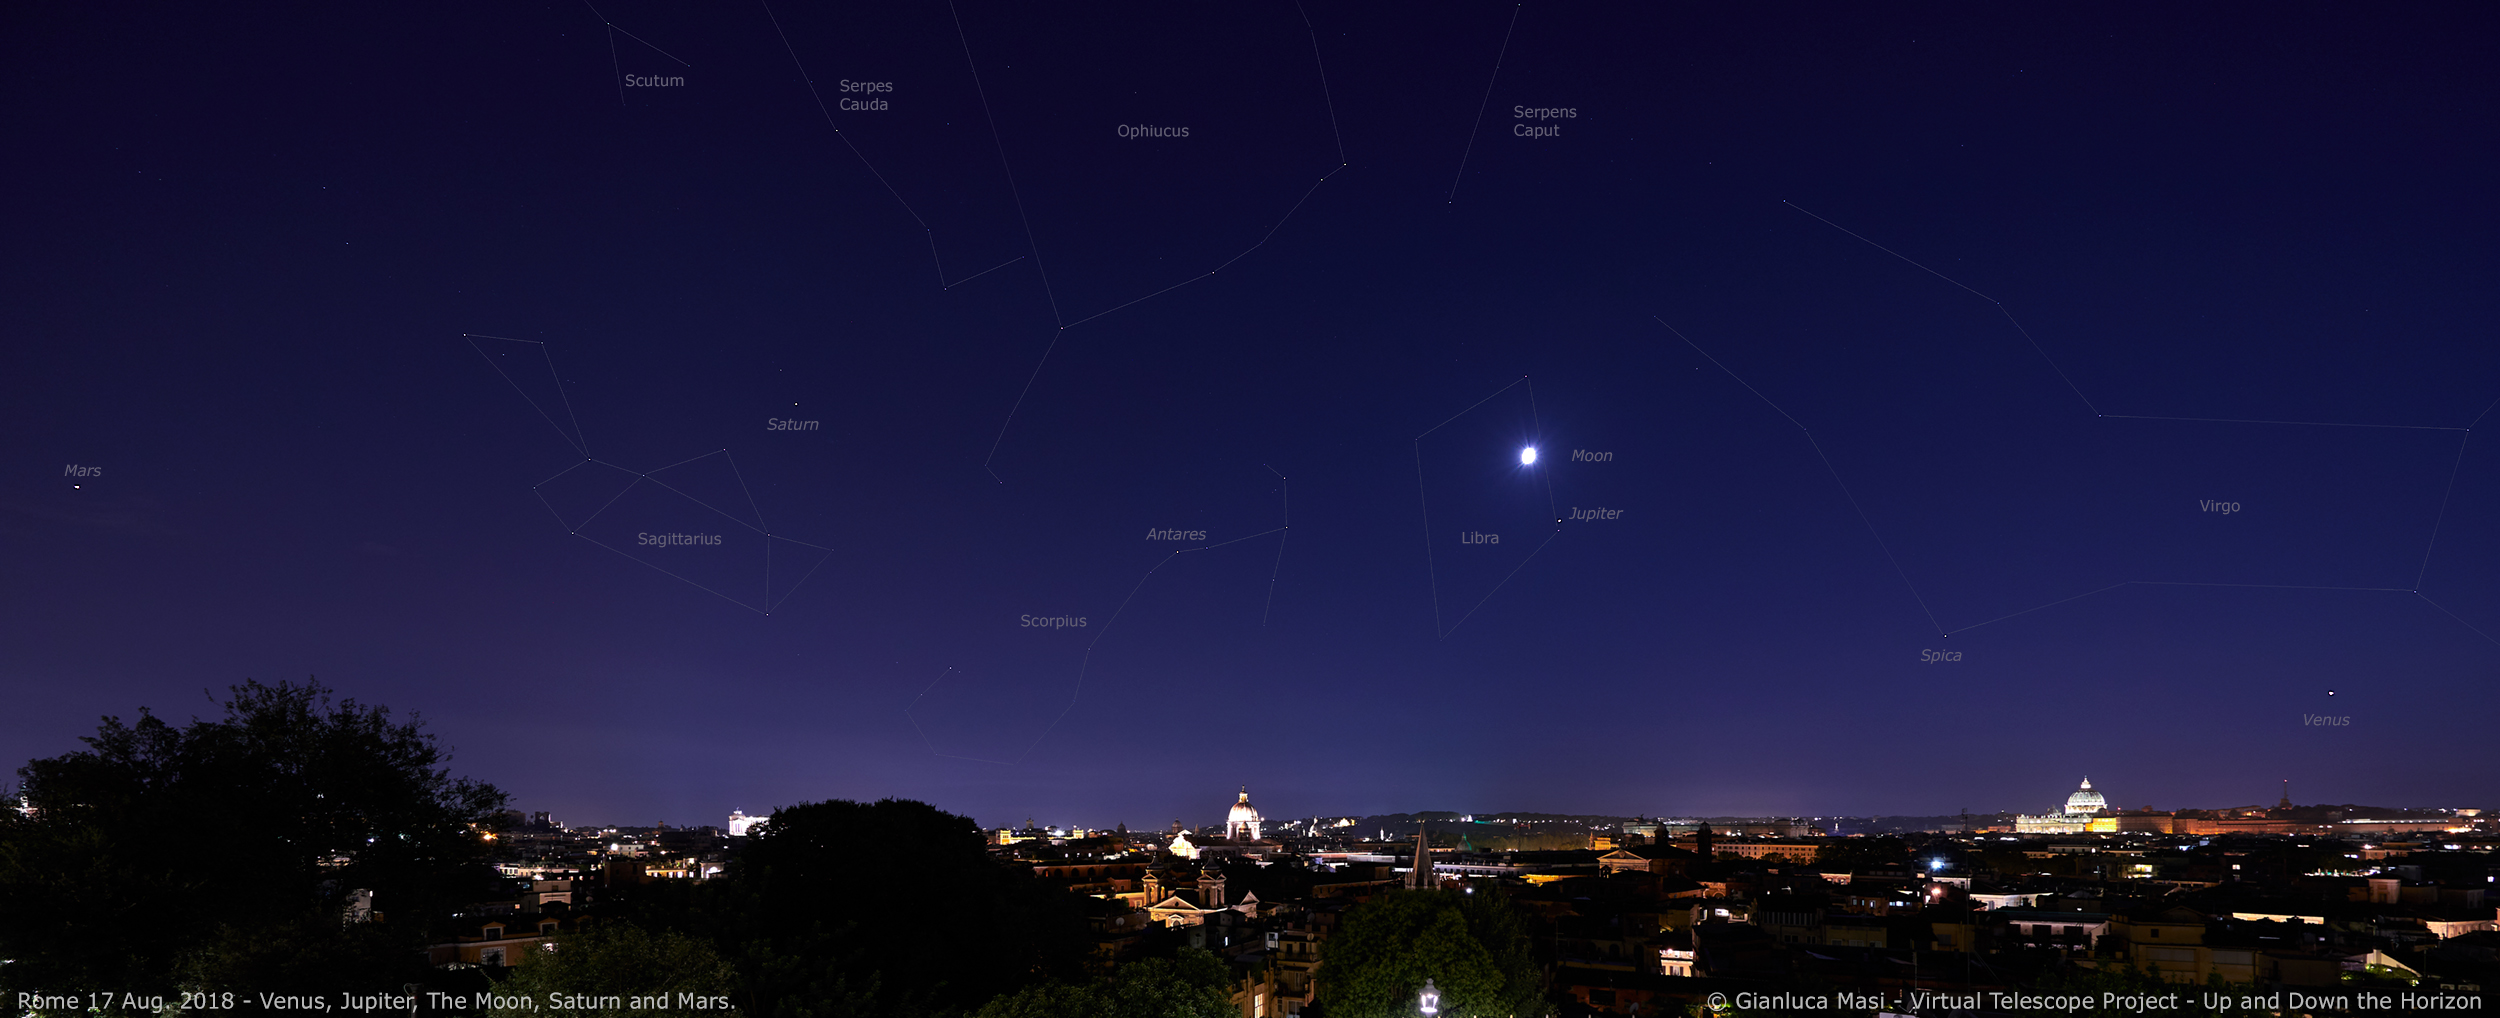 Venus, Jupiter, Saturn and Mars along the Zodiacal avenue, with the Moon, above Rome. 17 Aug. 2018